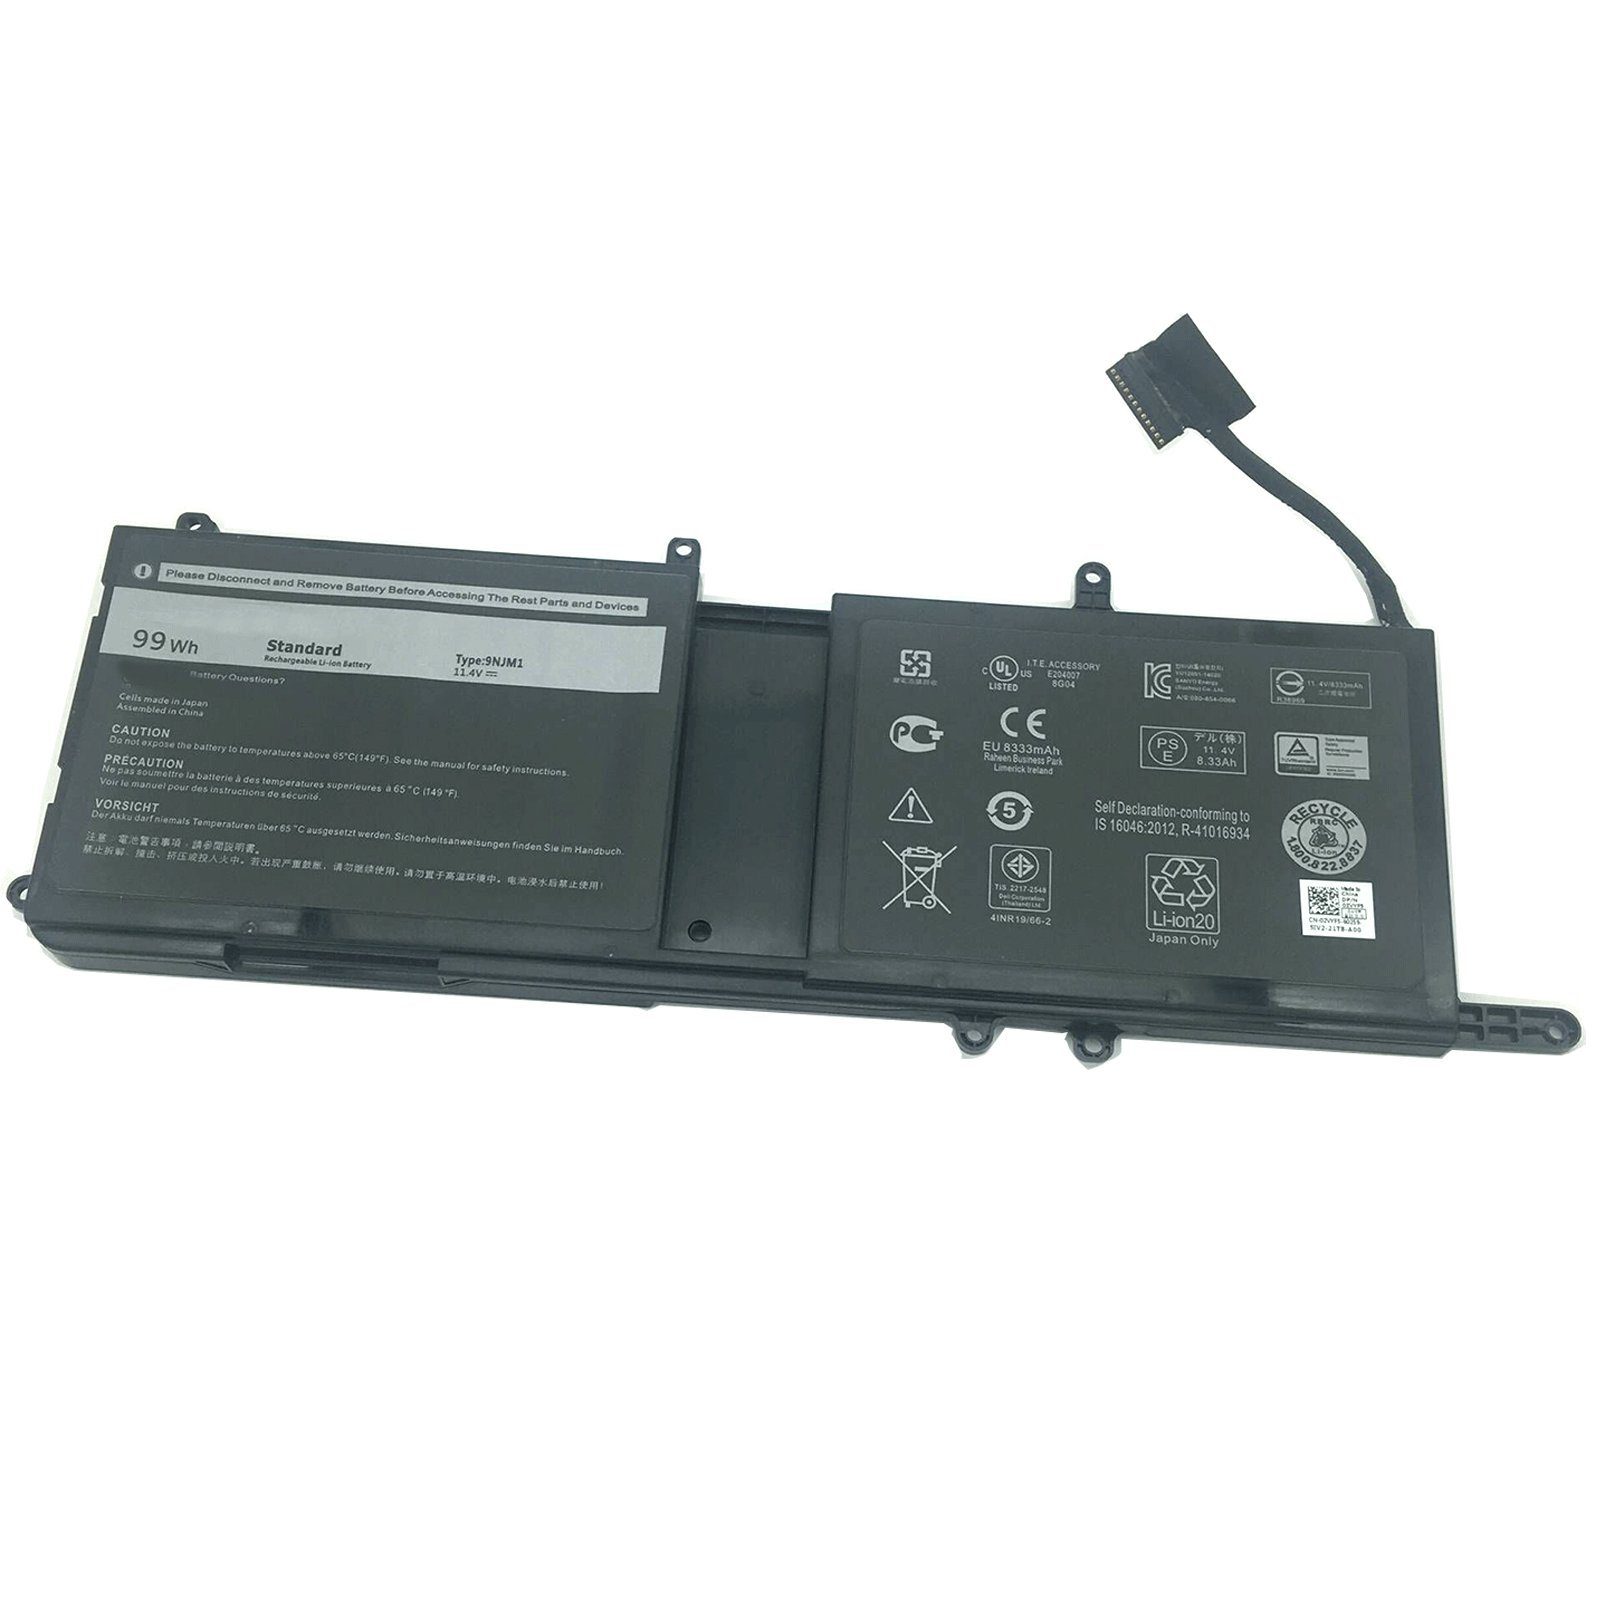 SUNNEAR Compatible/Replacement Laptop Battery for Dell 9NJM1 Alienware 15 R3 17 R4 99Wh 11.4V MG2YH 01D82